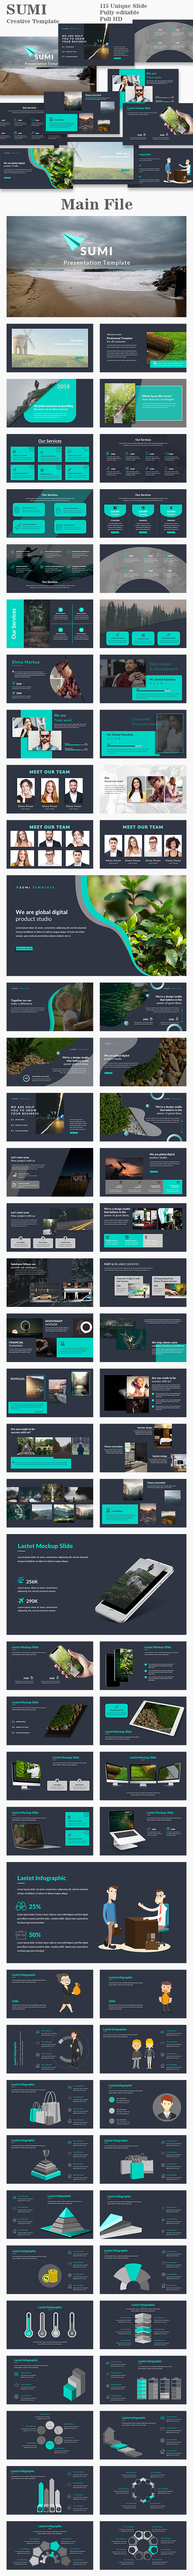 Sumi Creative PowerPoint Template - Creative PowerPoint Templates